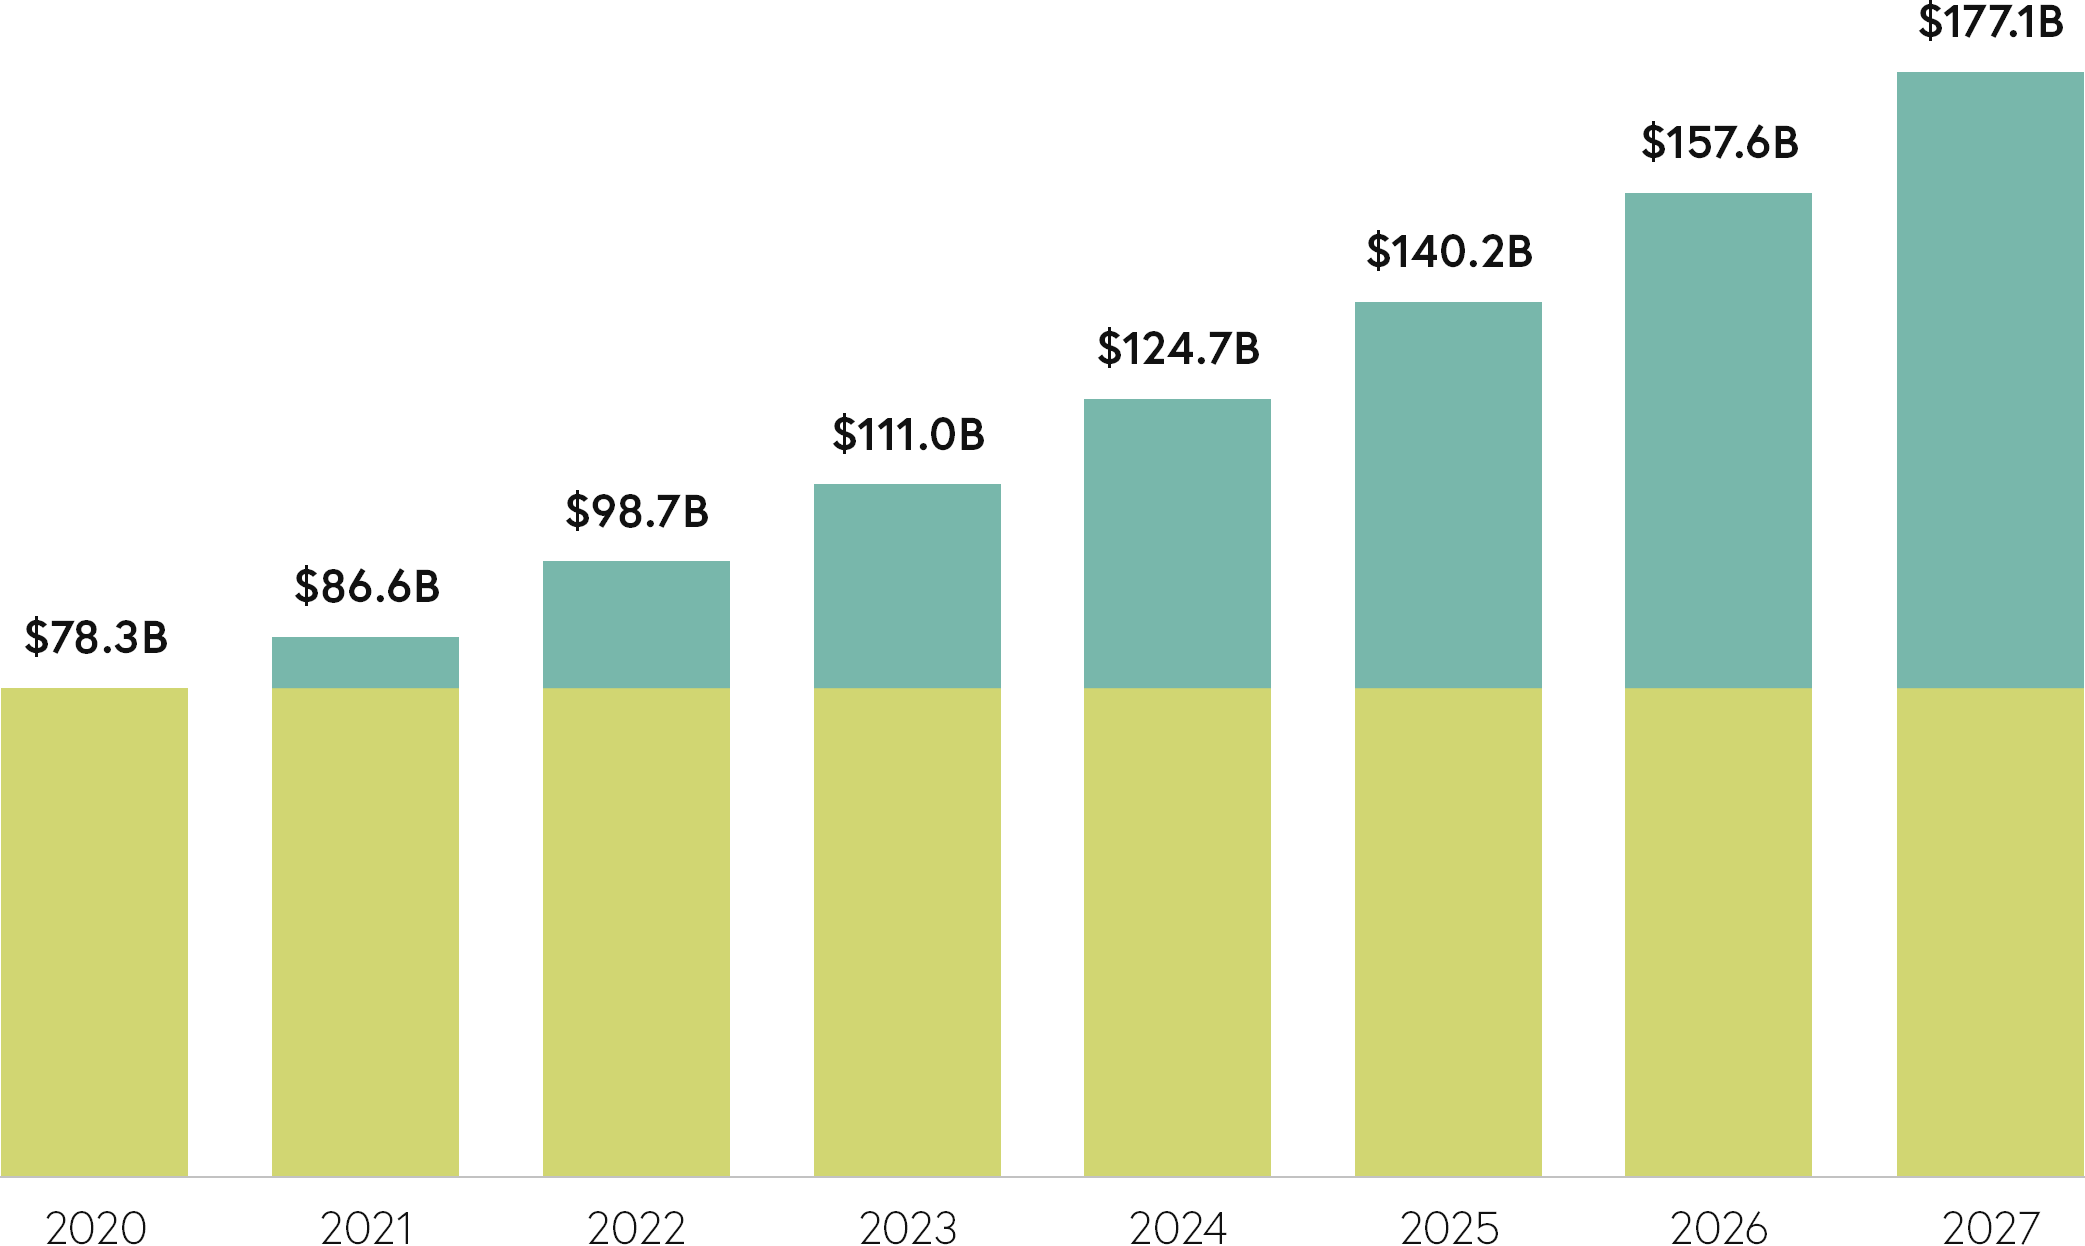 Bar chart representing online furniture sales growth